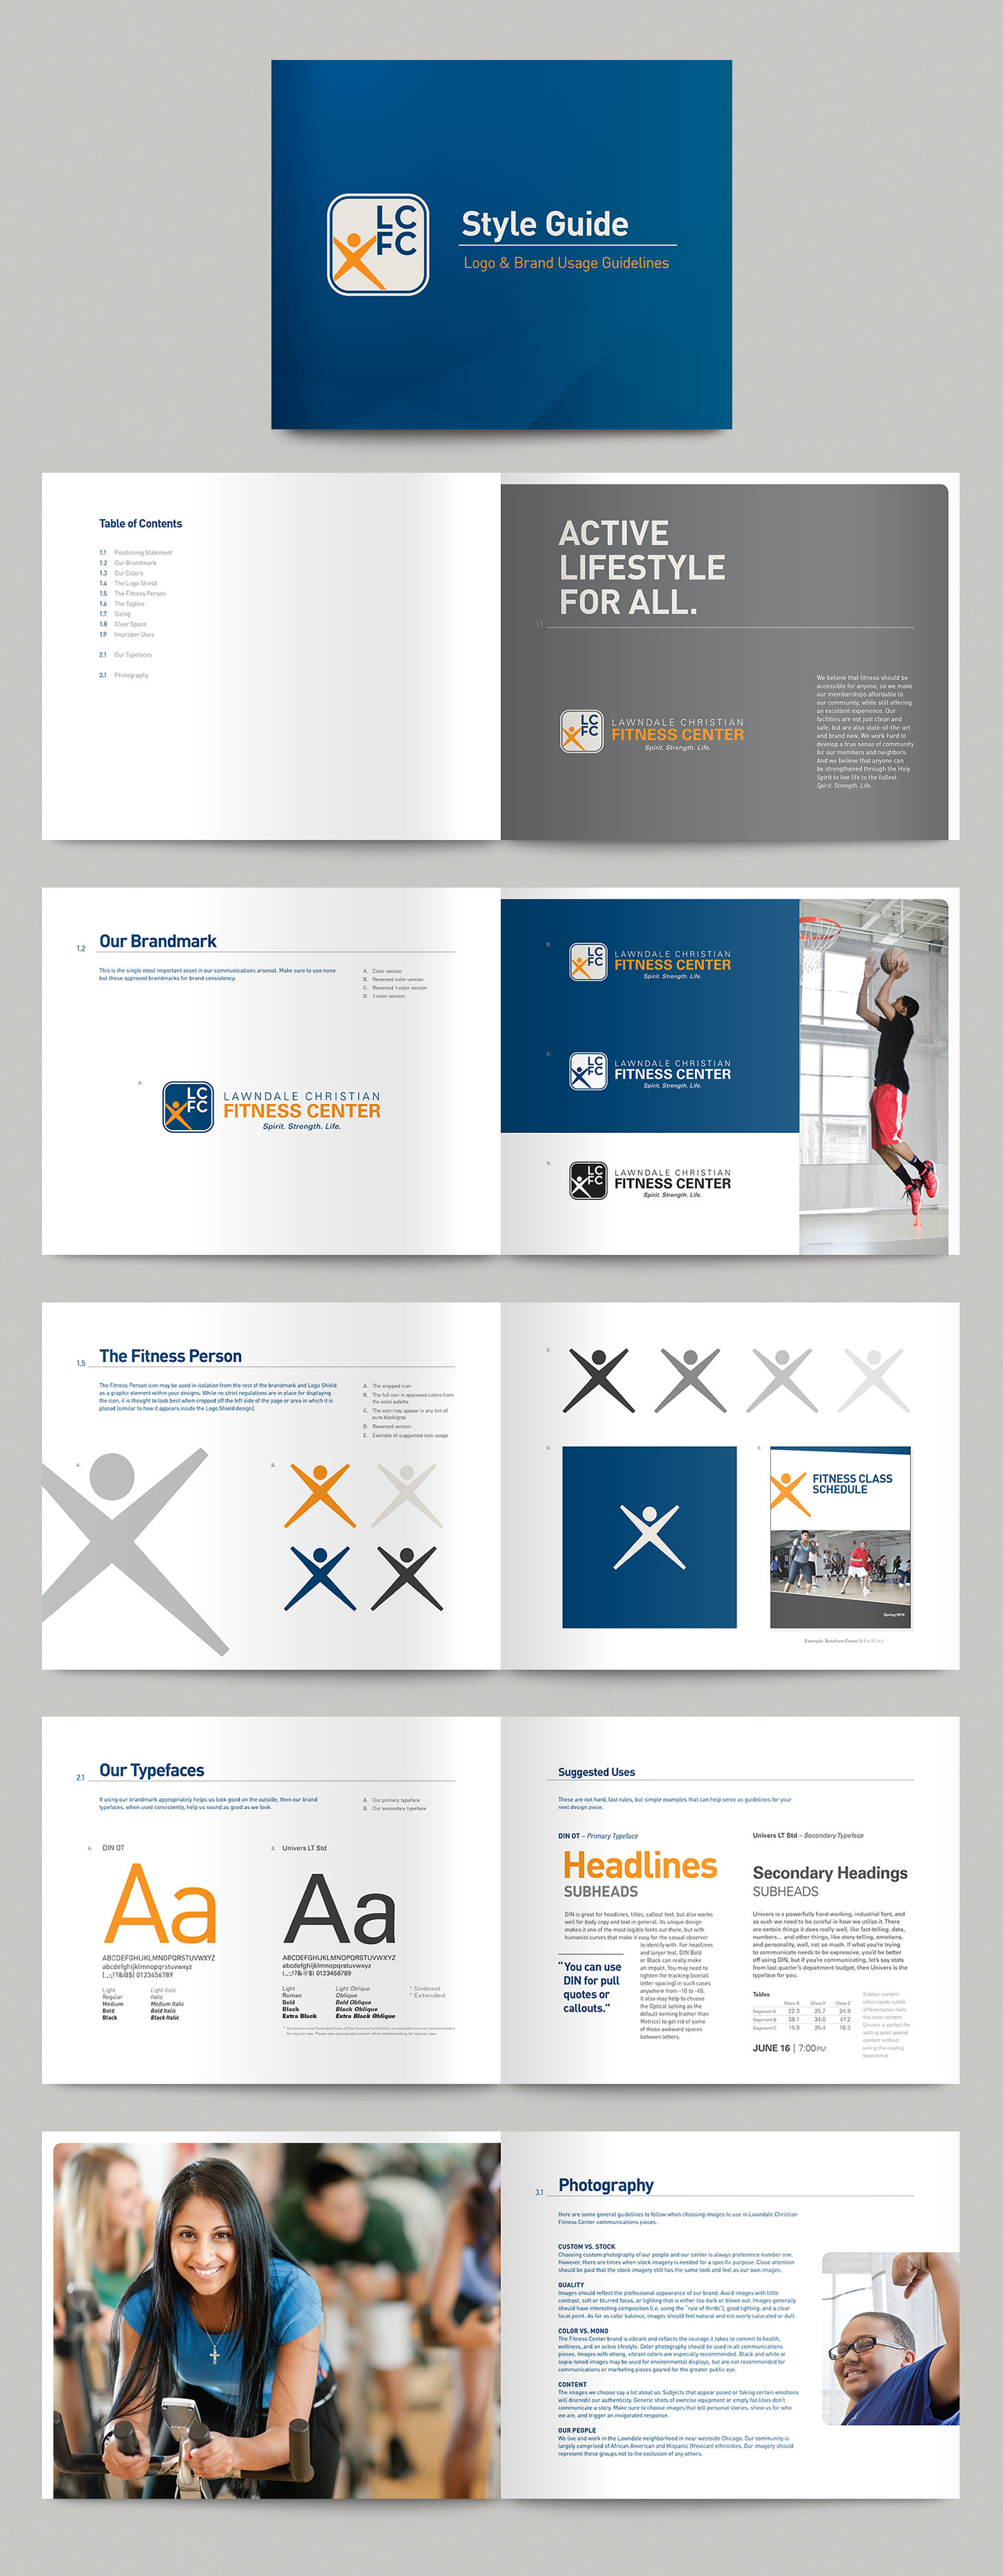 Selected spreads from Lawndale Christian Fitness Center's brand style guide.Image copyright Jeff Miller, HellothisisJeff Design LLC